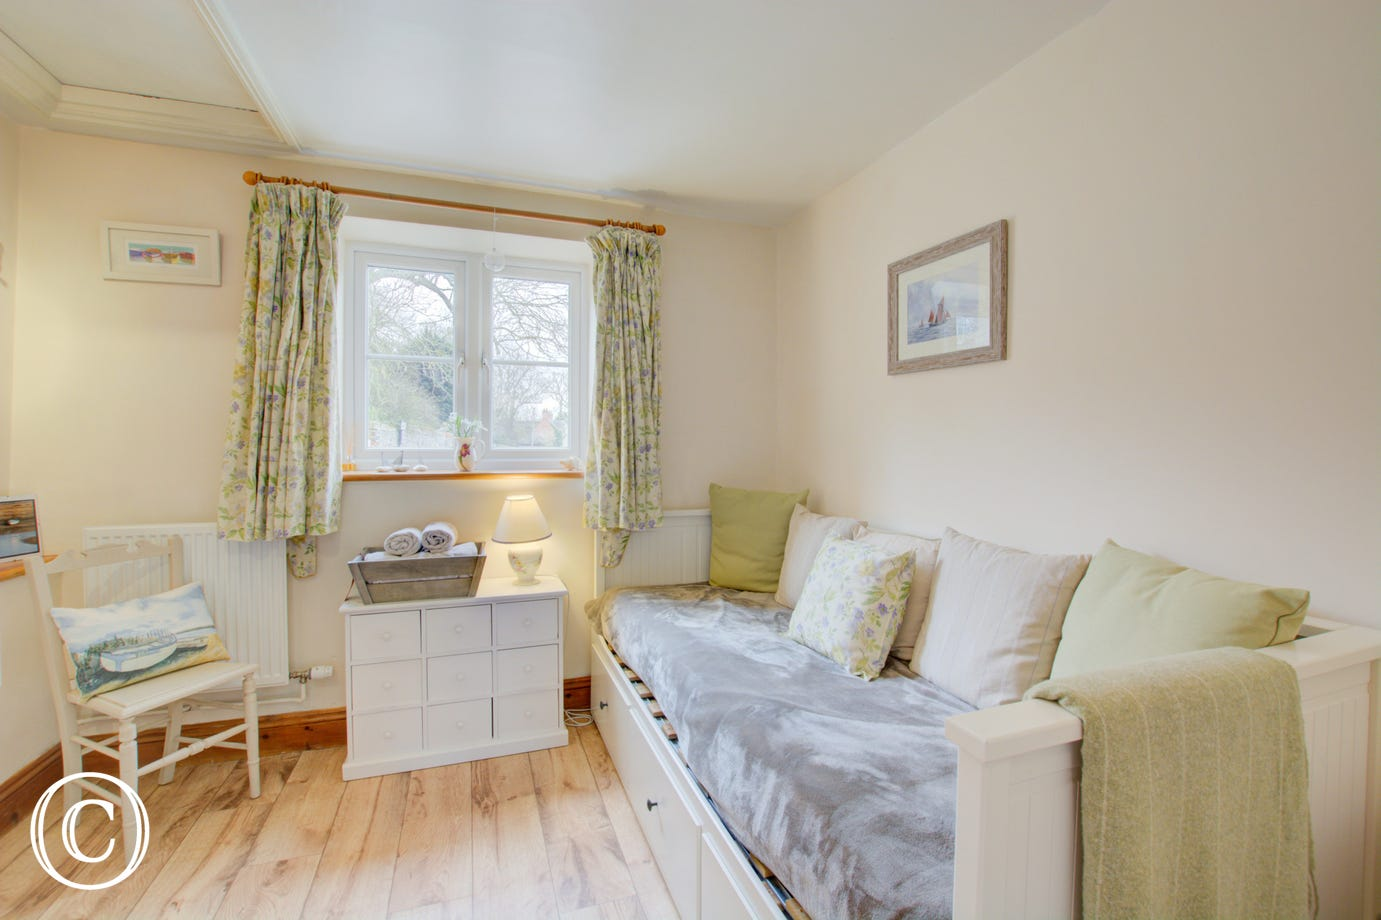 This property also has a delightful cosy 'snug' room